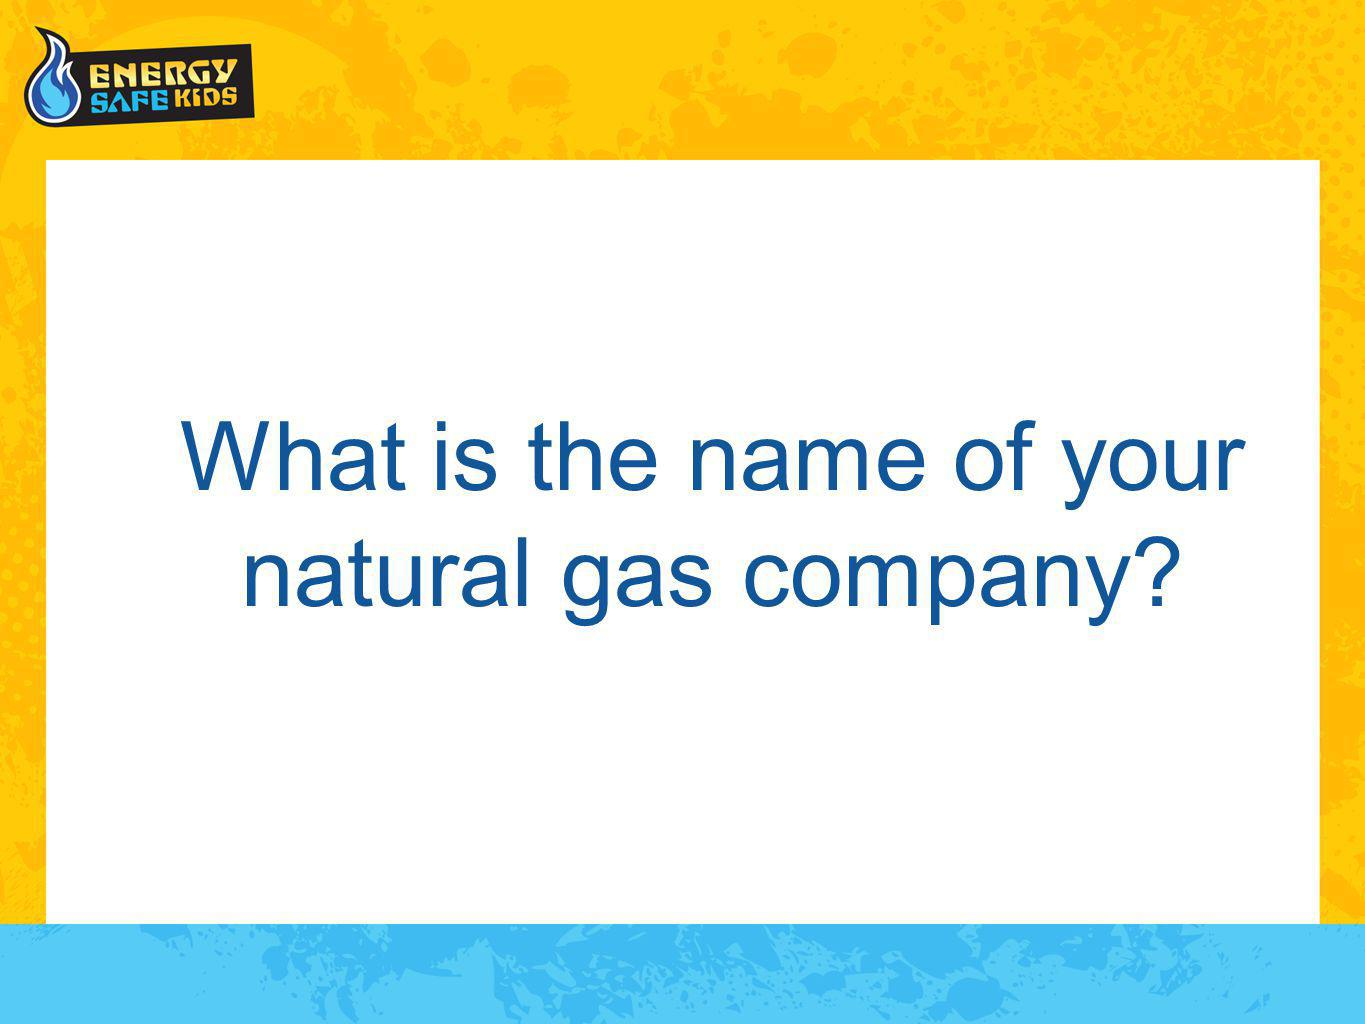 What is the name of your natural gas company?